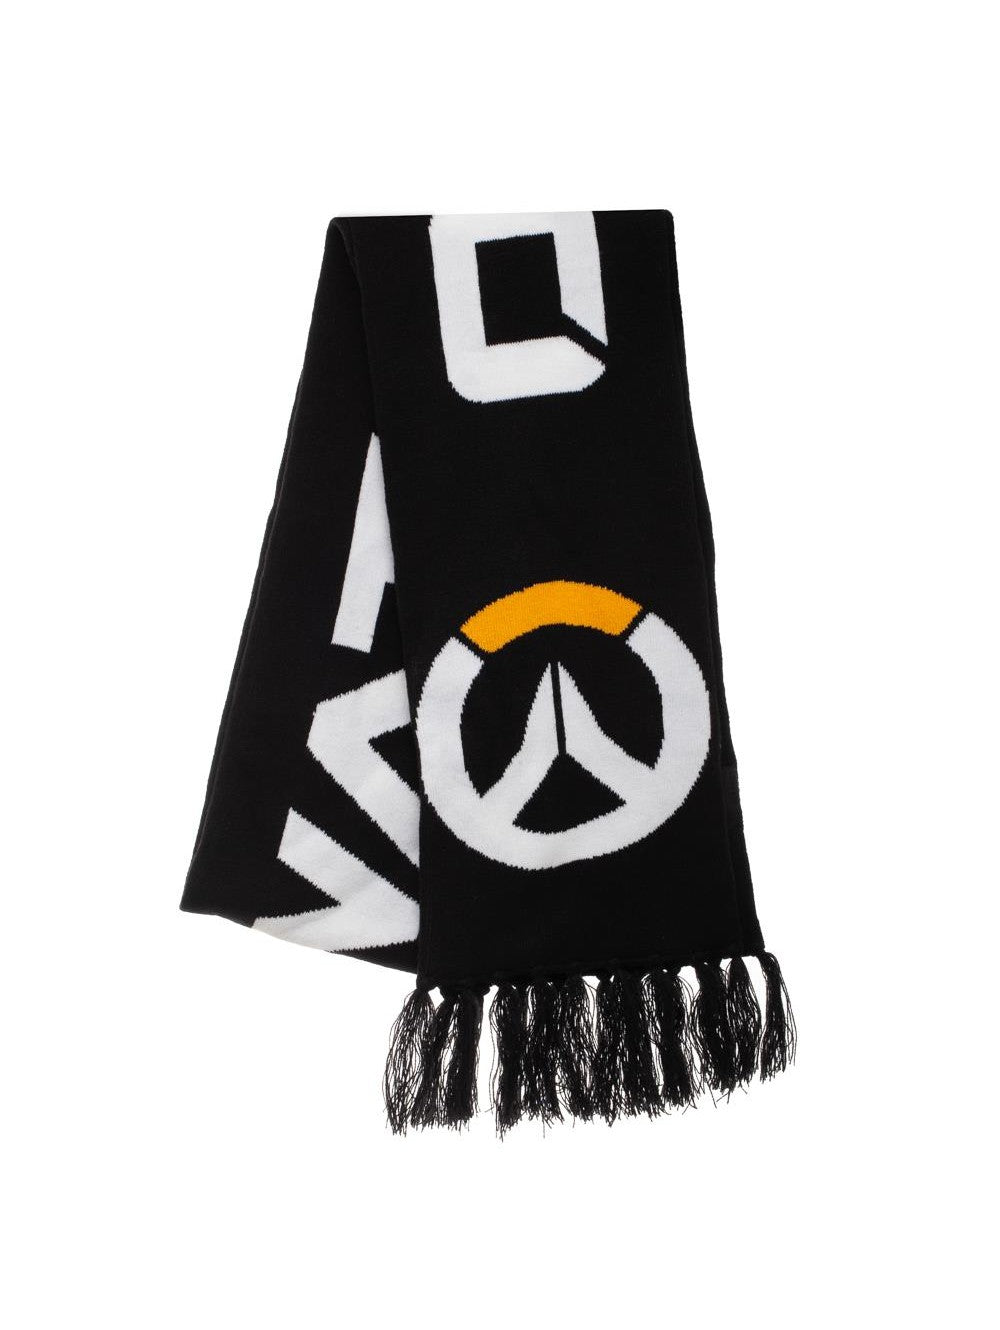 OVERWATCH Logo Black Scarf